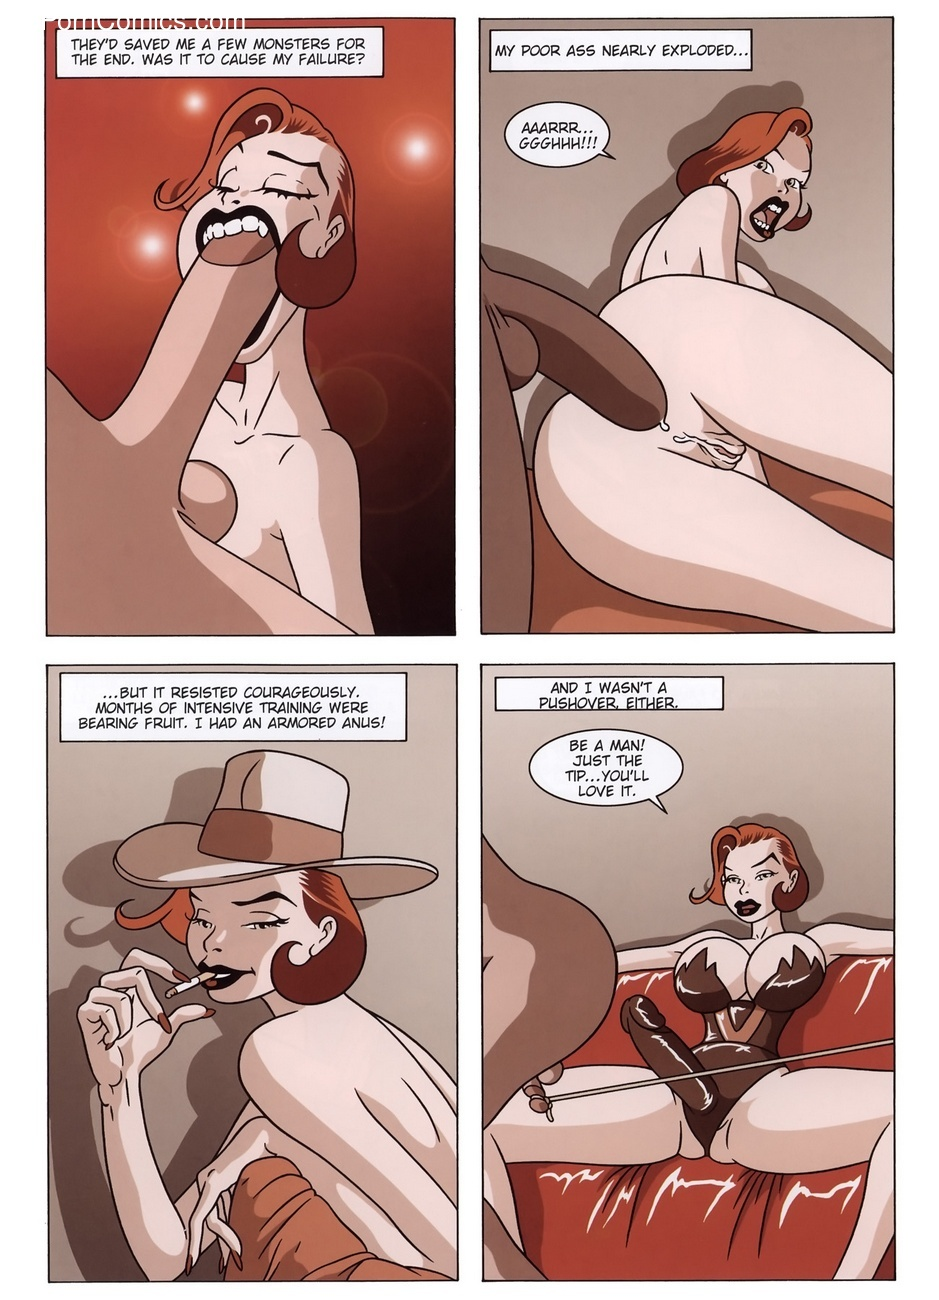 The 110 Blowjobs 30 free sex comic